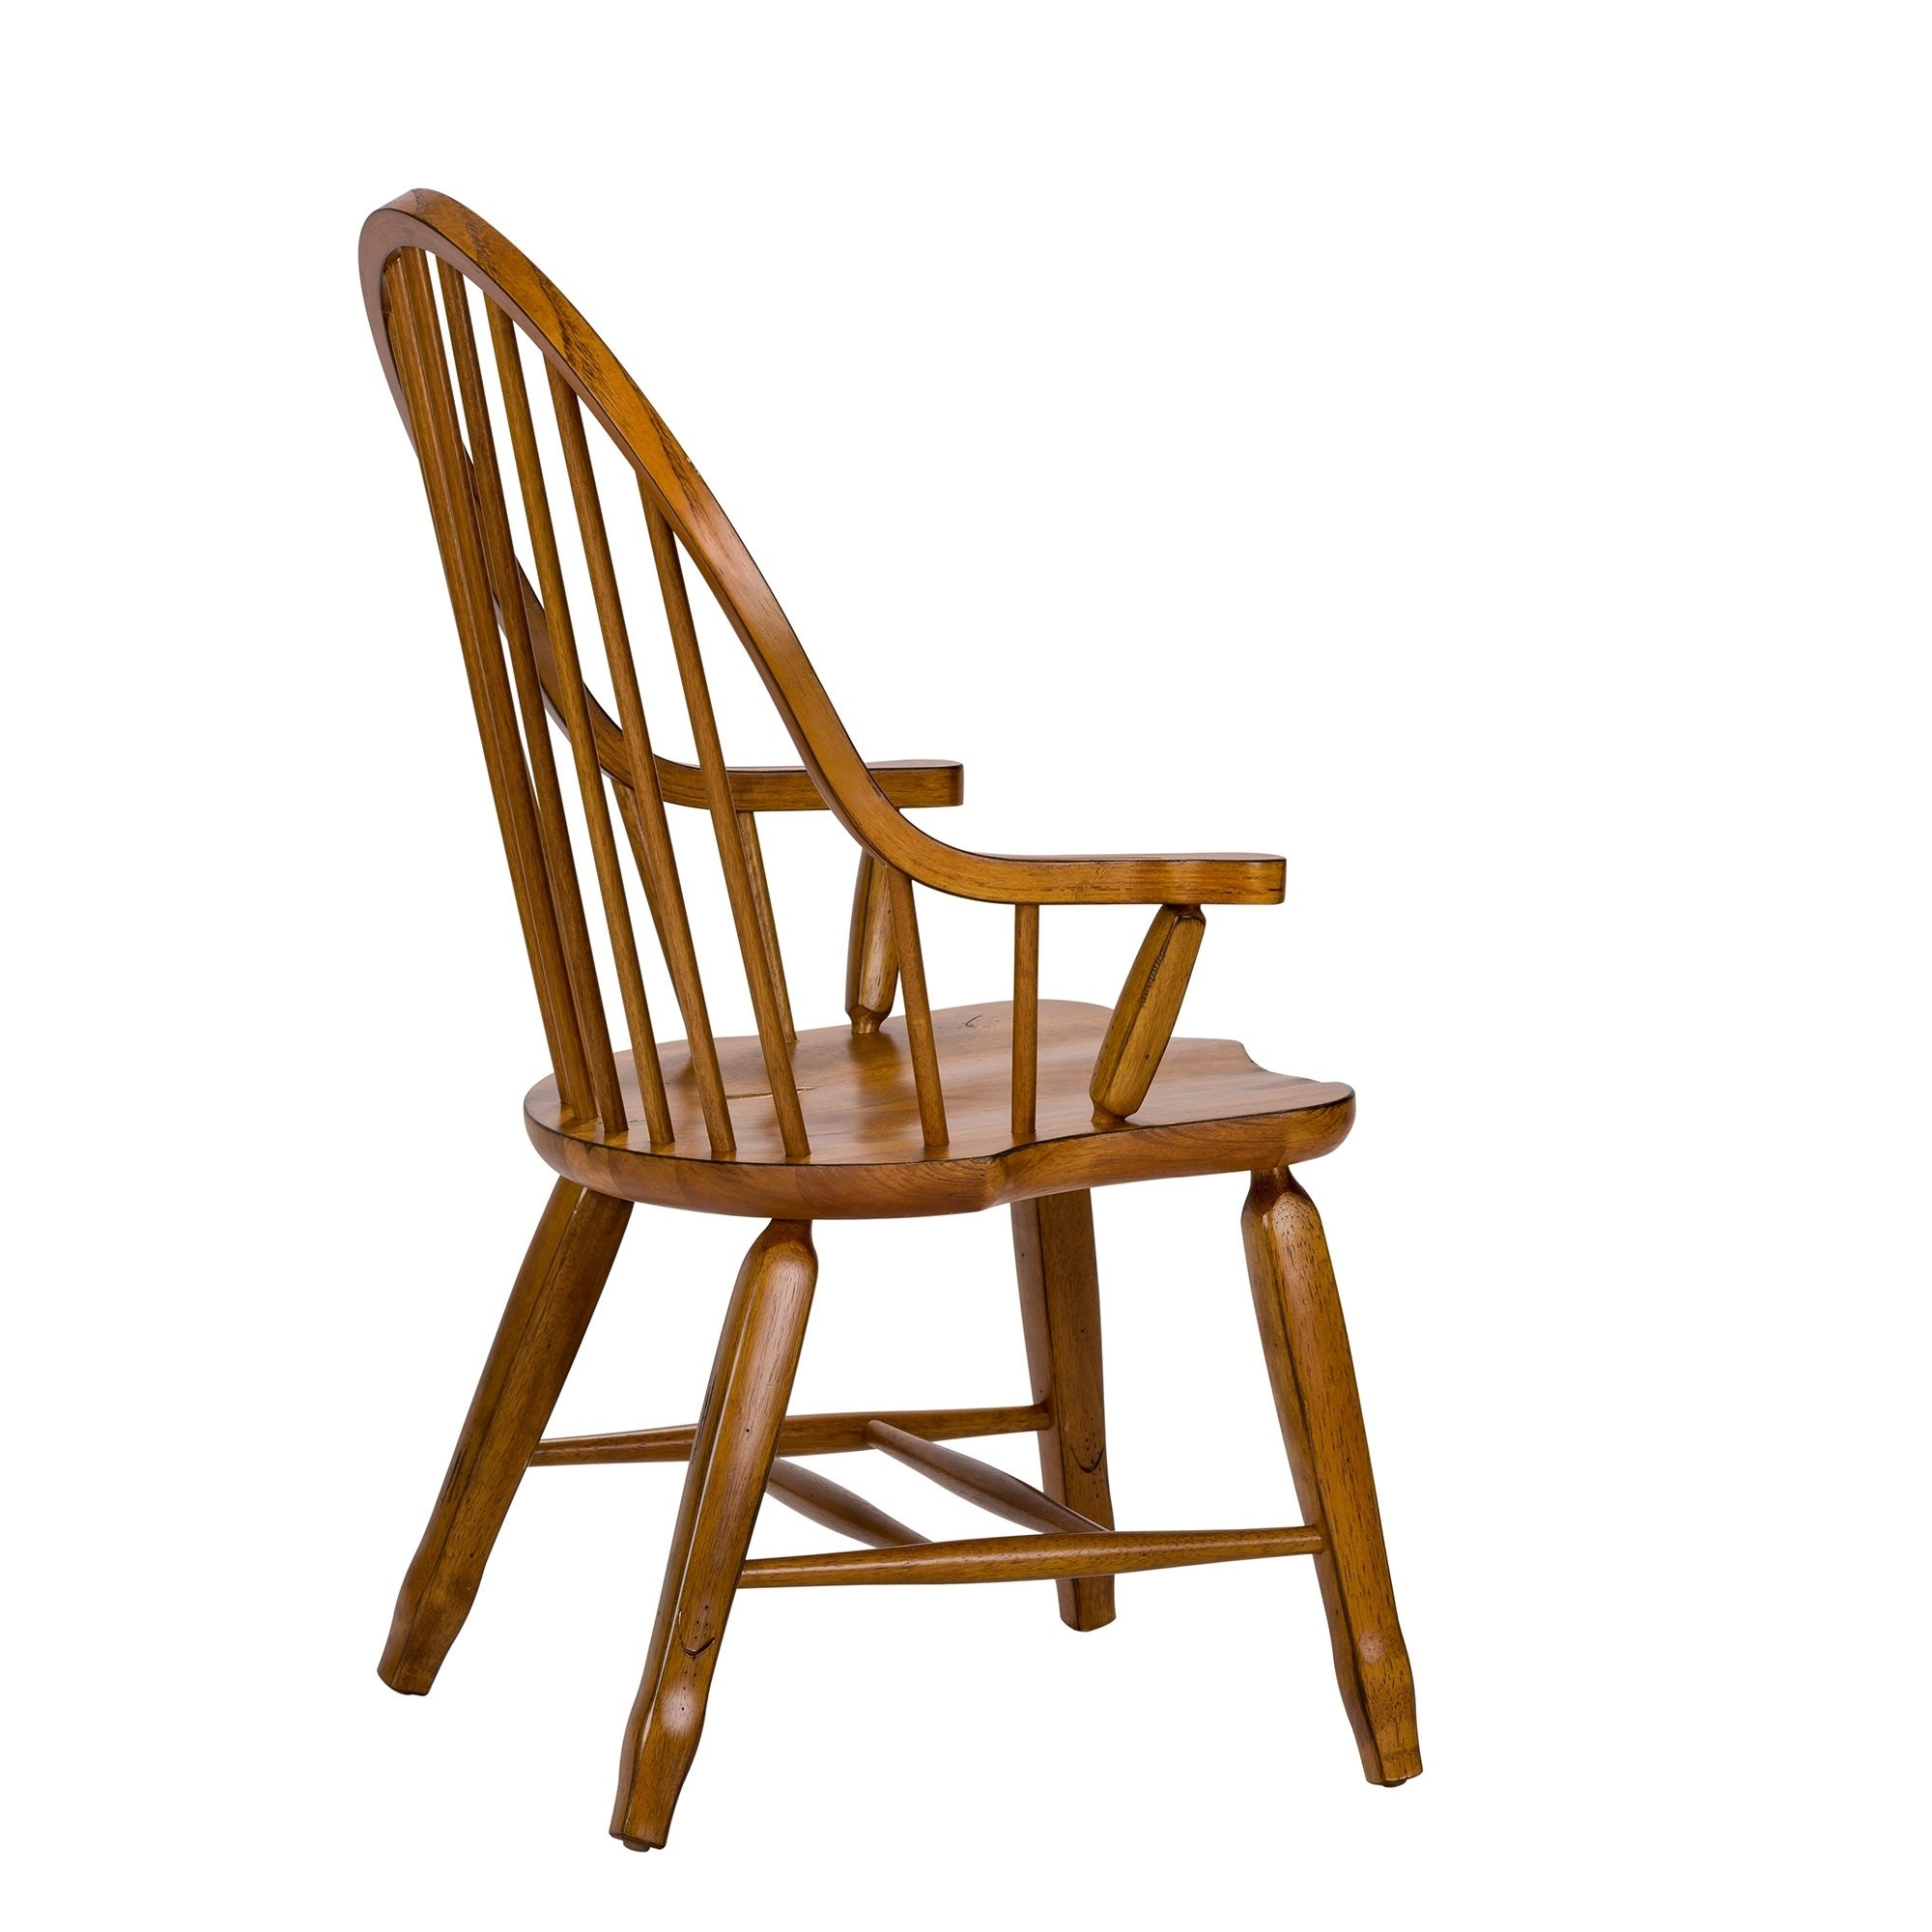 Shop Treasures Rustic Oak Bow Back Arm Chair - On Sale - Free Shipping Today - Overstock.com - 10644775  sc 1 st  Overstock.com : bow back chair - Cheerinfomania.Com